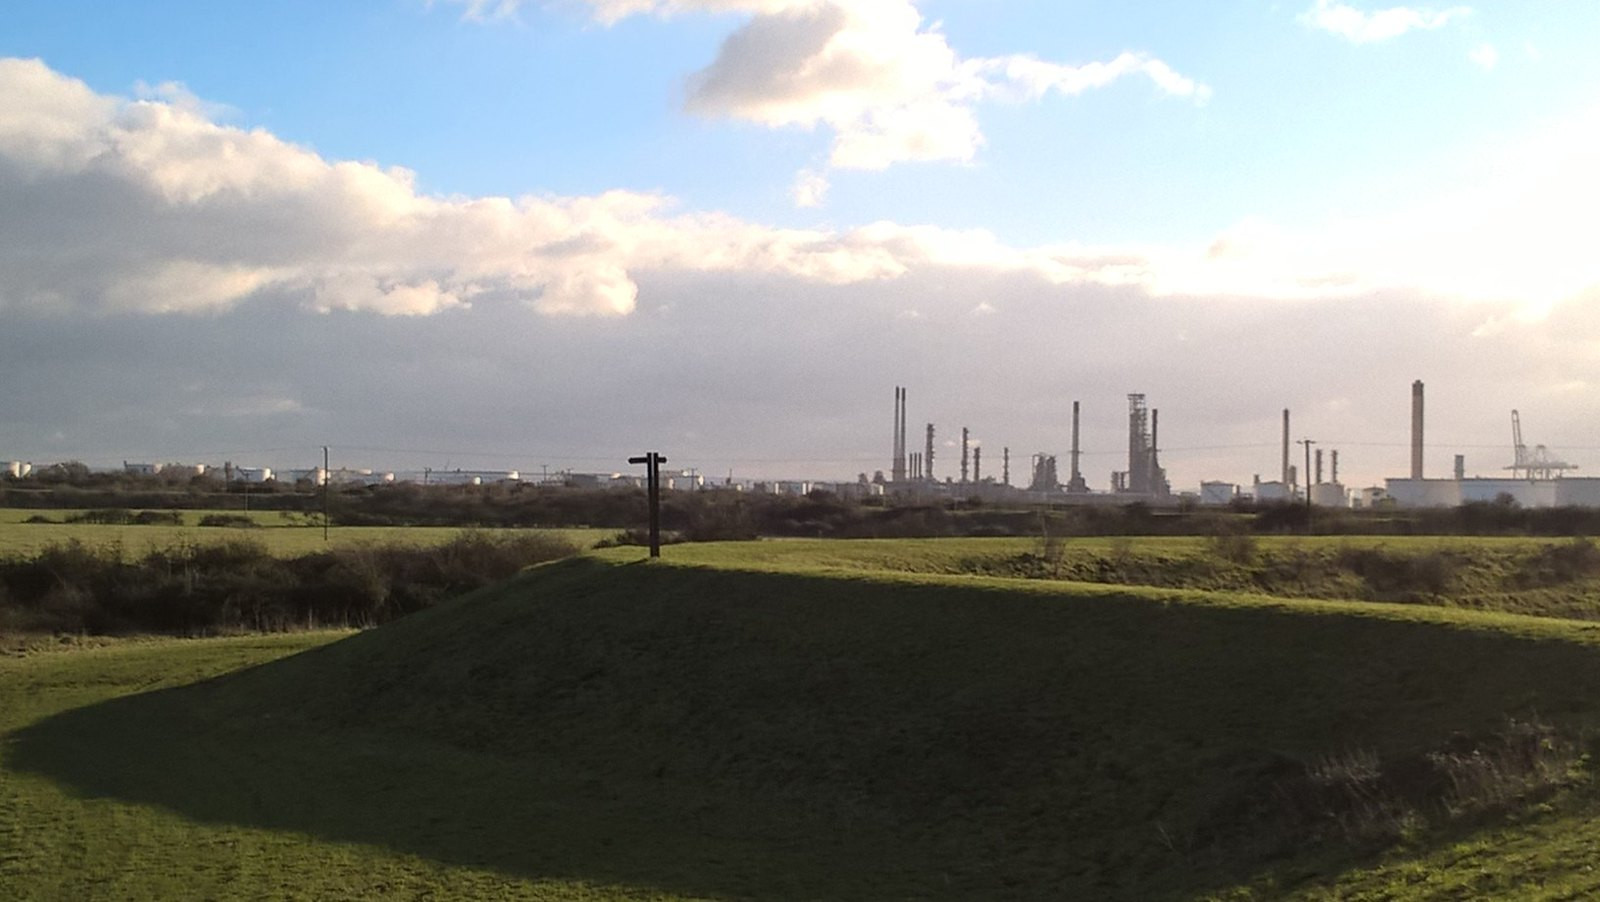 Coryton Refinery/Oil Terminal/Deepwater Seaport from East Haven Creek, Canvey Island SWC Walk 258 Benfleet Circular (via Canvey Island) Supplied by Kevin G.